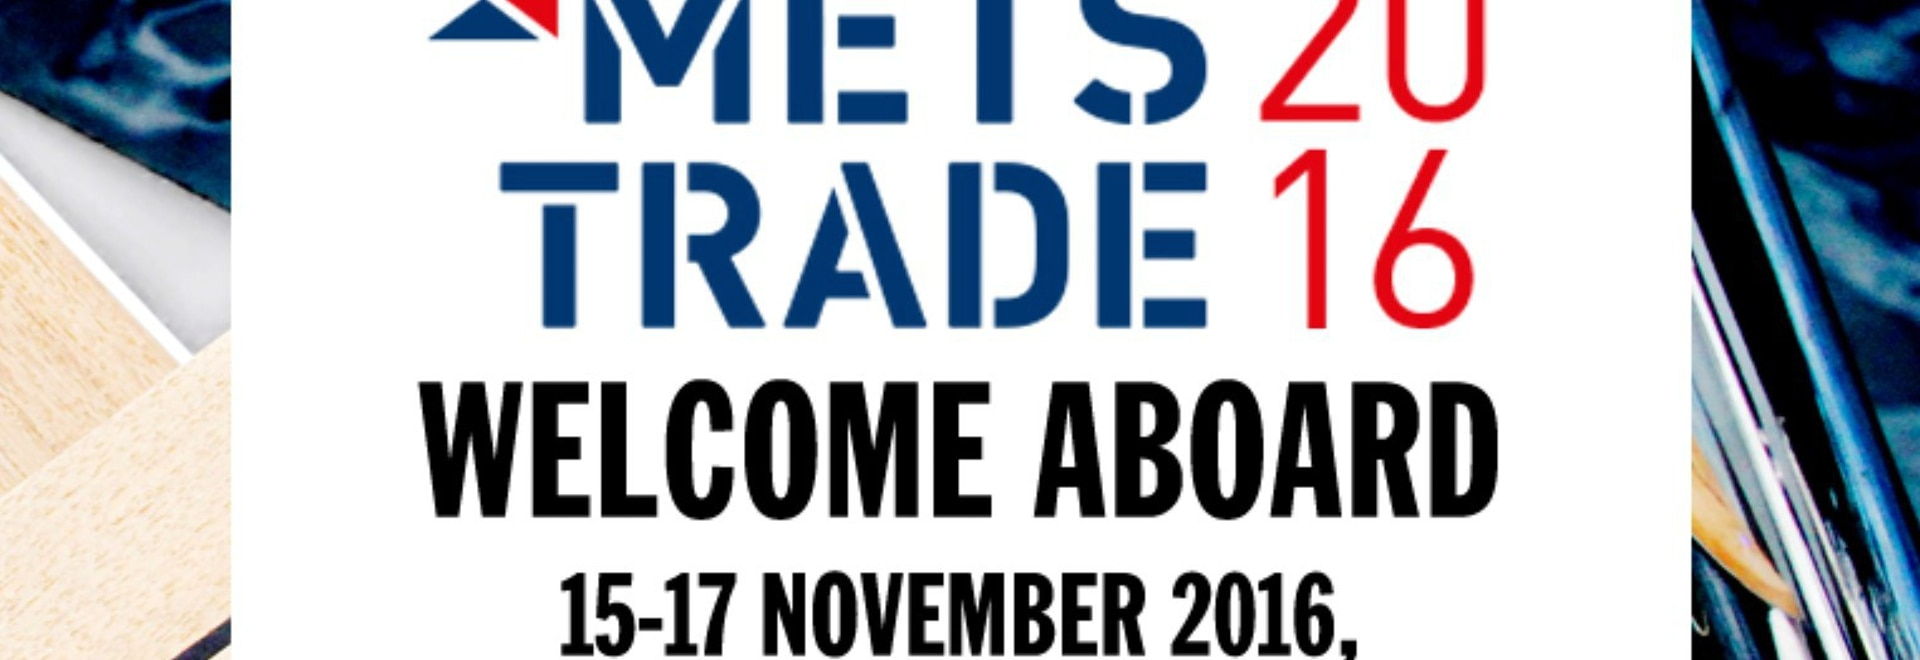 METSTRADE Show: Meet us at Hall 7 - Booth 07.469